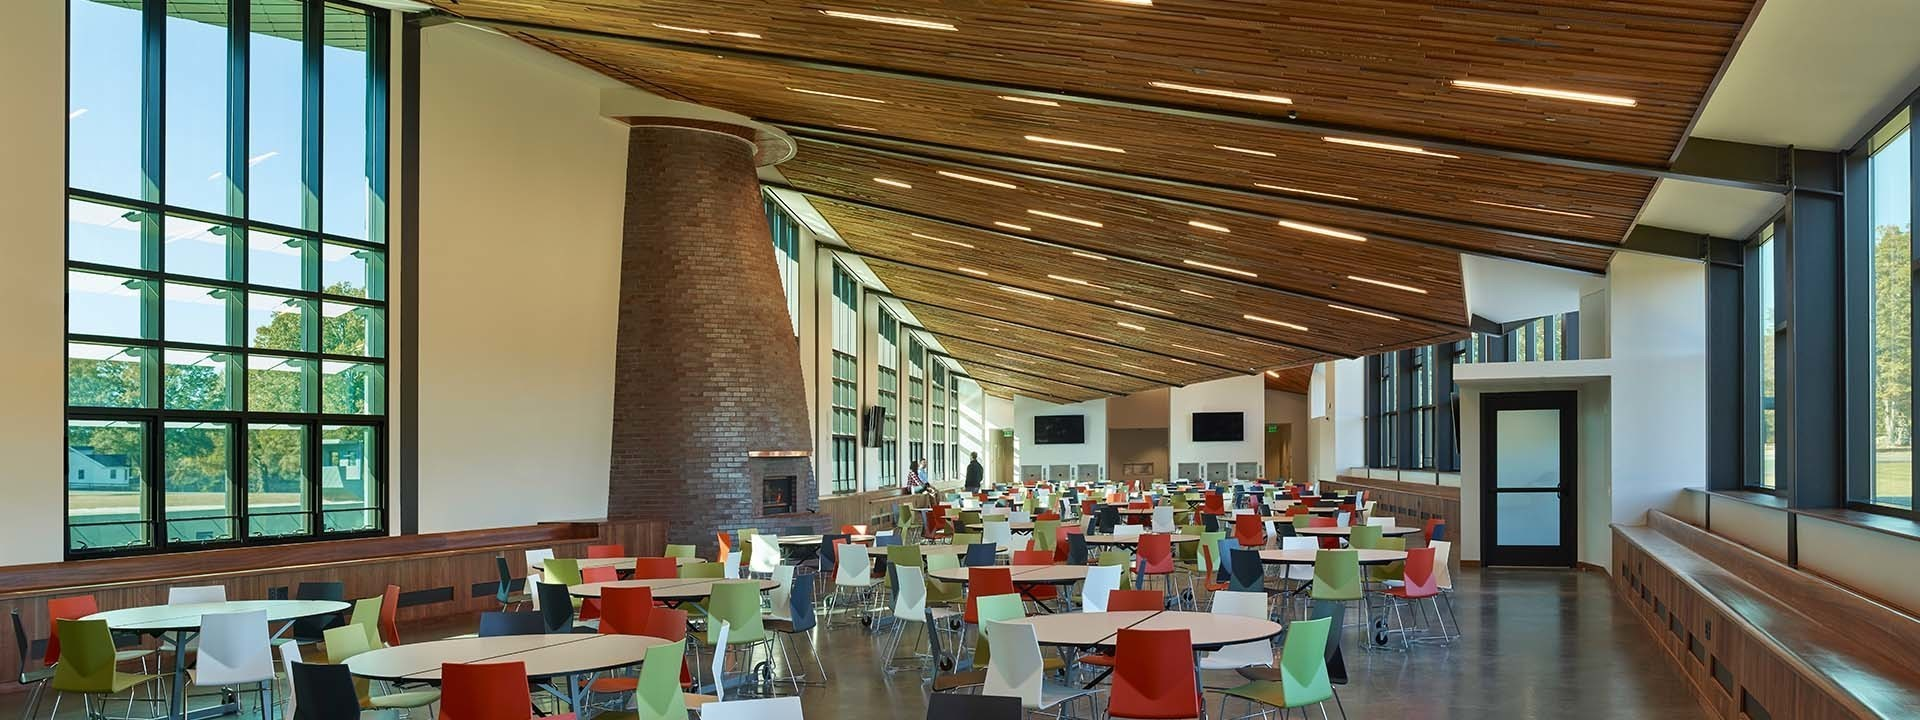 Interior dining hall